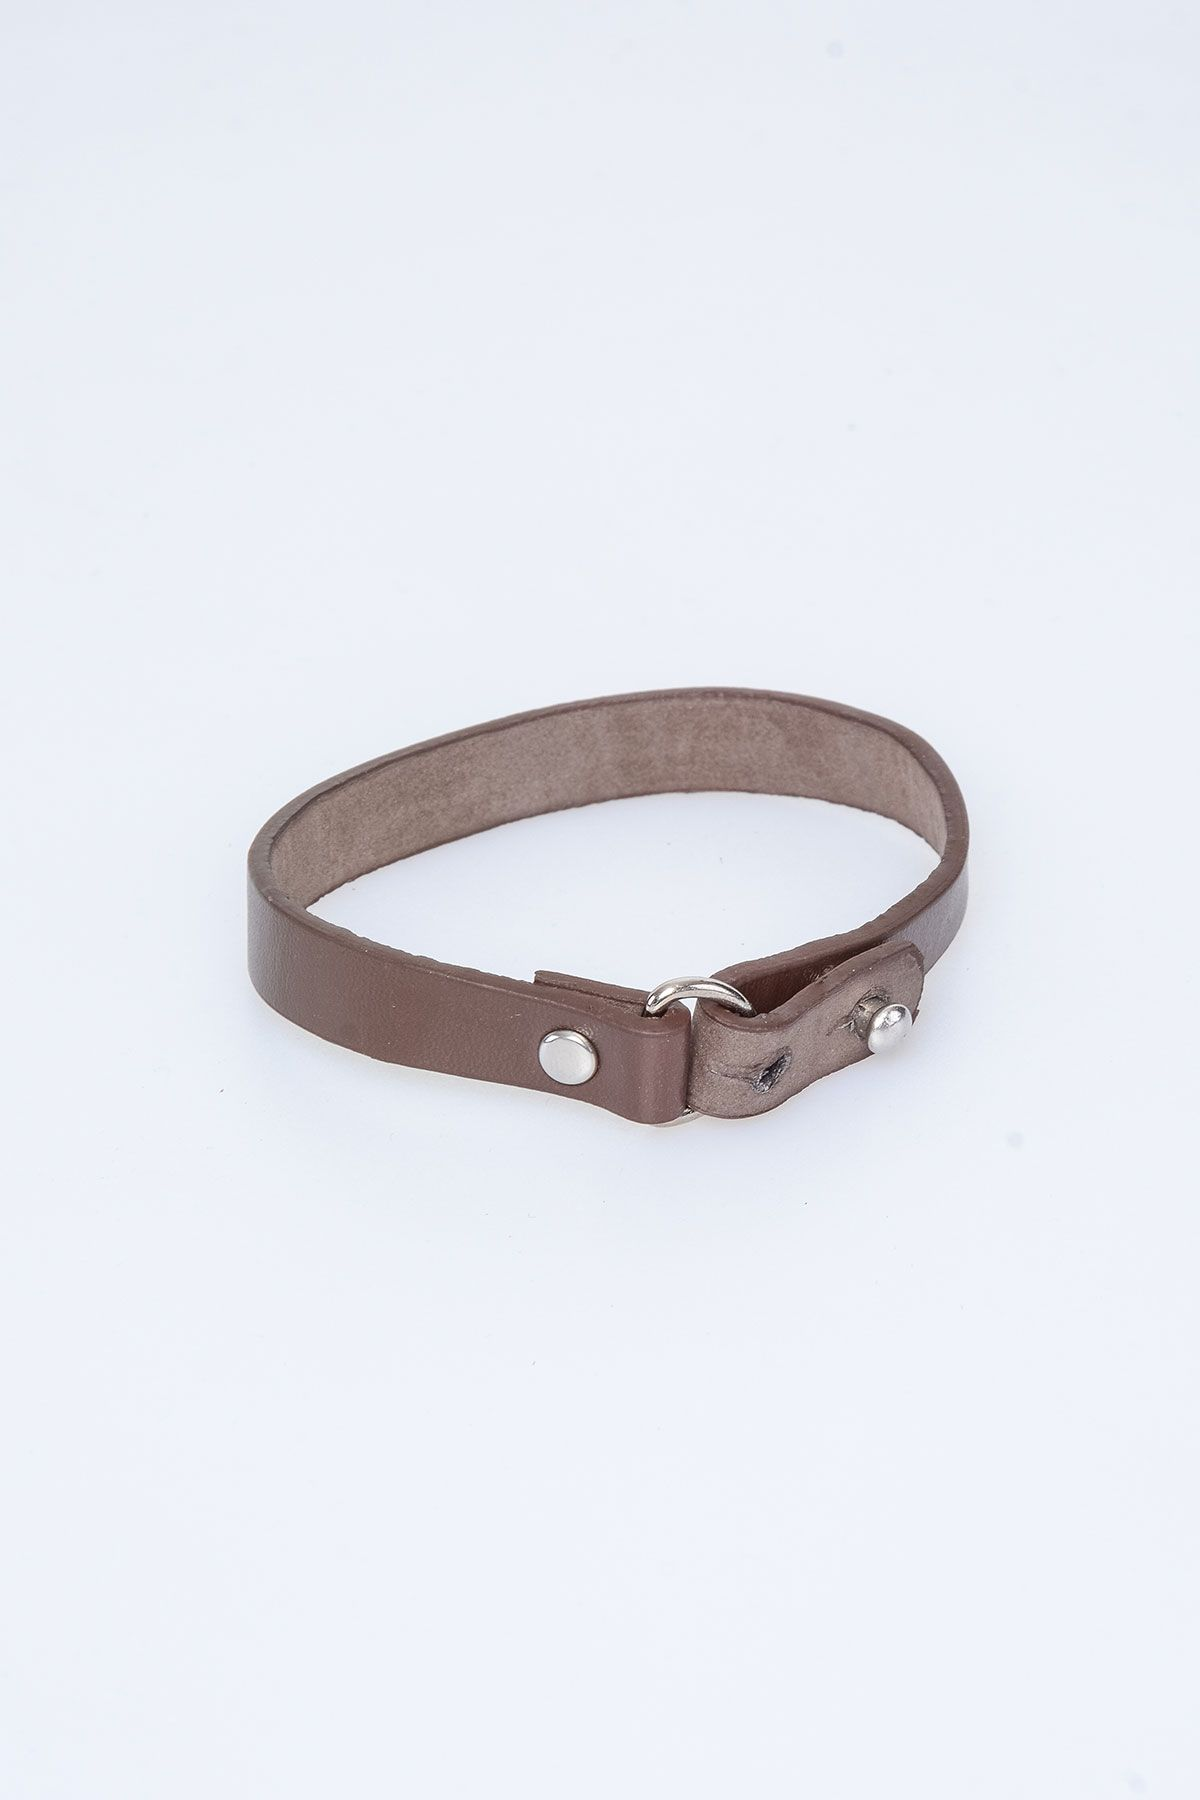 Pegia Genuine Leather Bracelet 19BL24 Brown